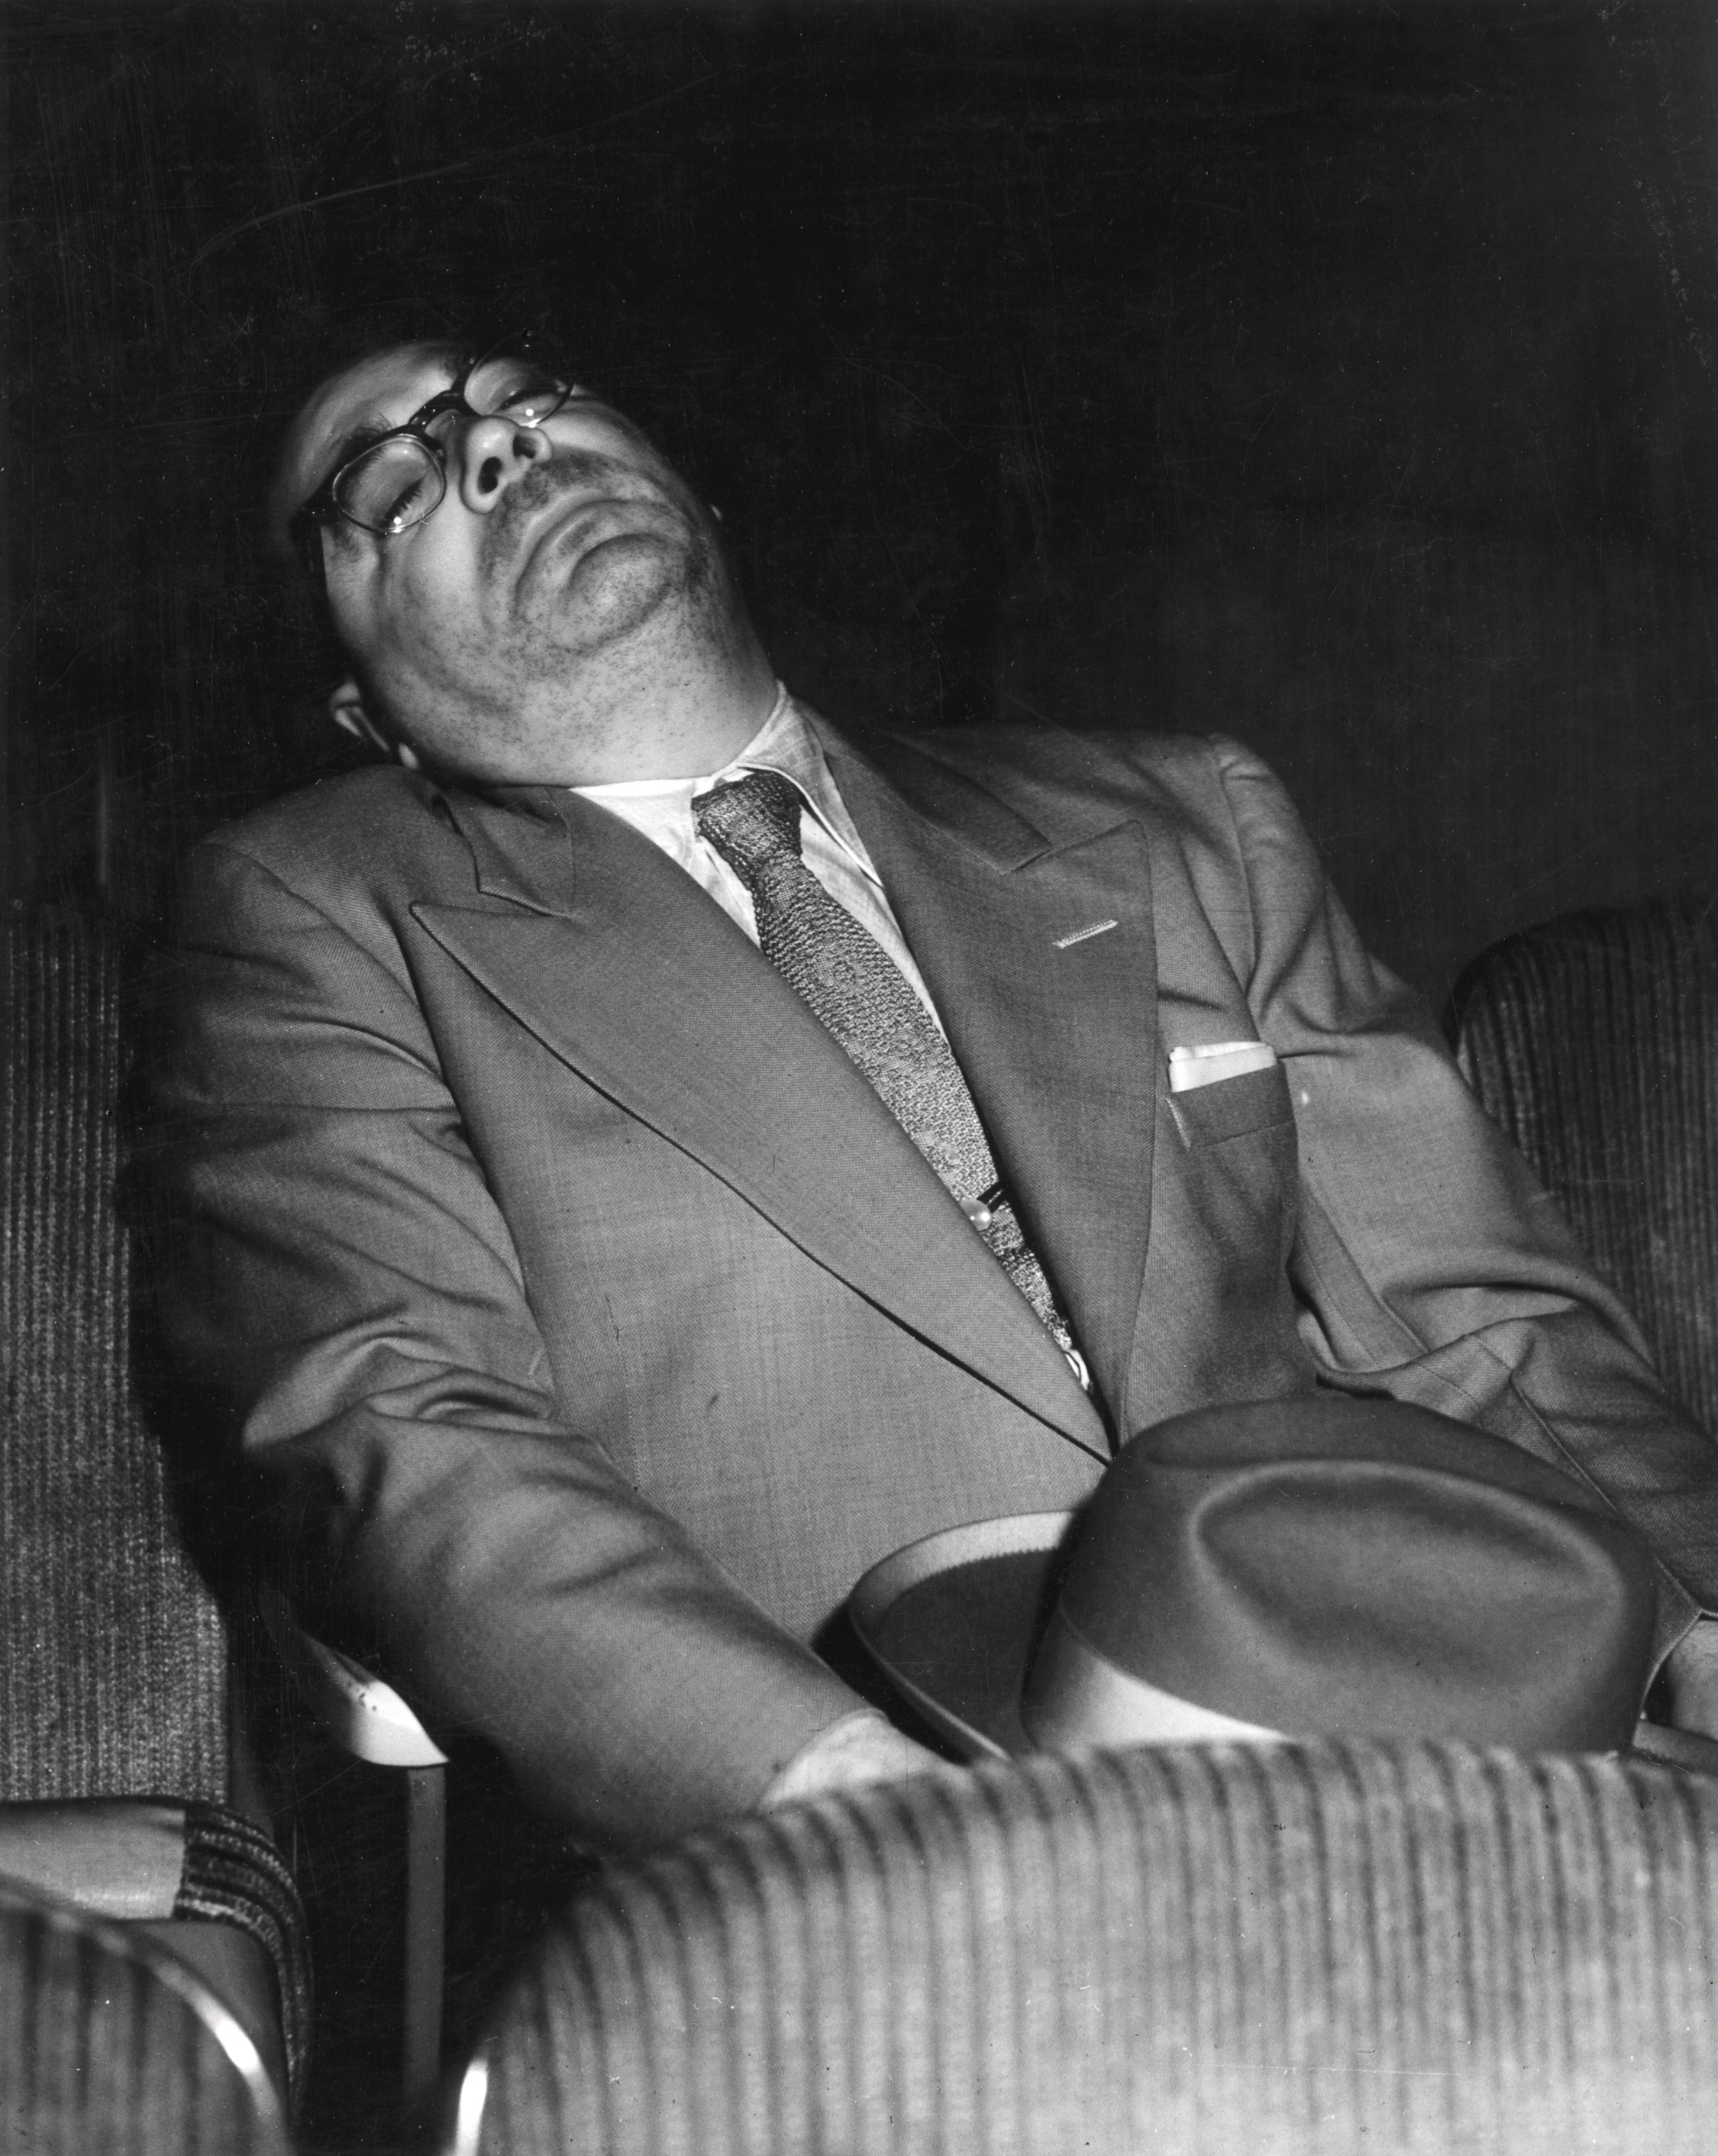 DOZING: Sleeping at the Movies, ca. 1943. © Weegee/ International Center of Photography